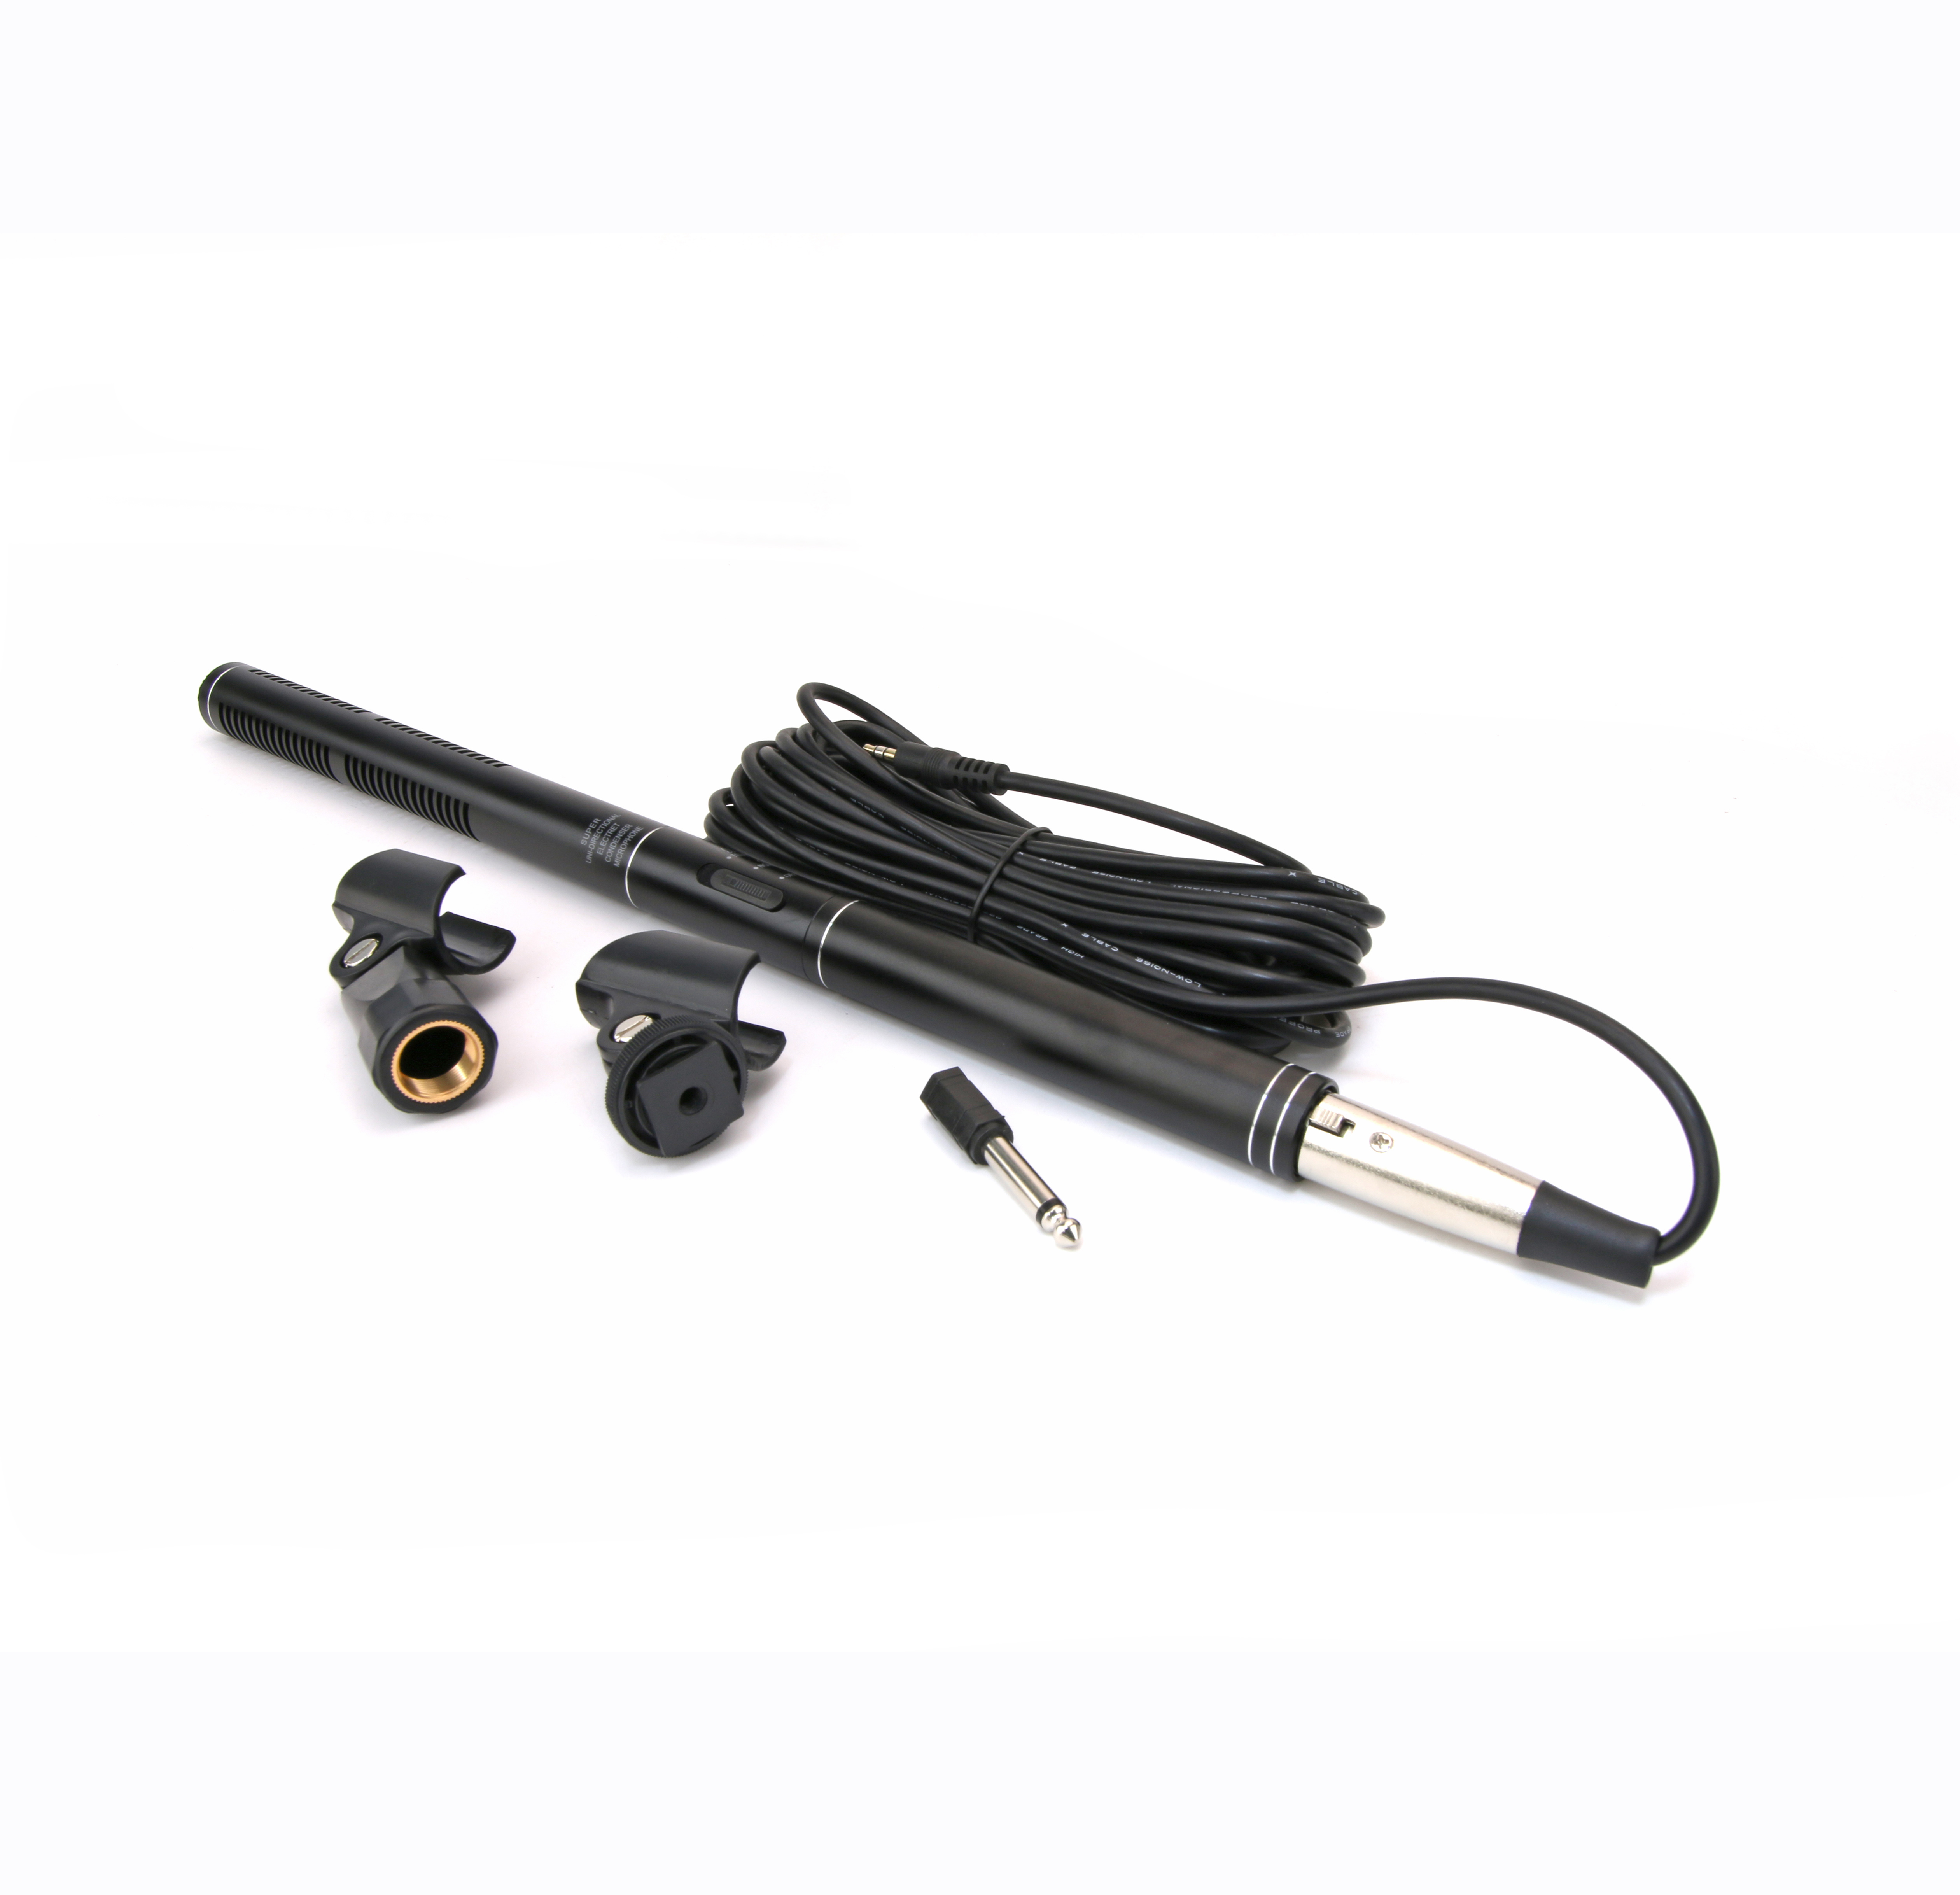 Professional System handheld recording Interview Microphone with Sponge Cover